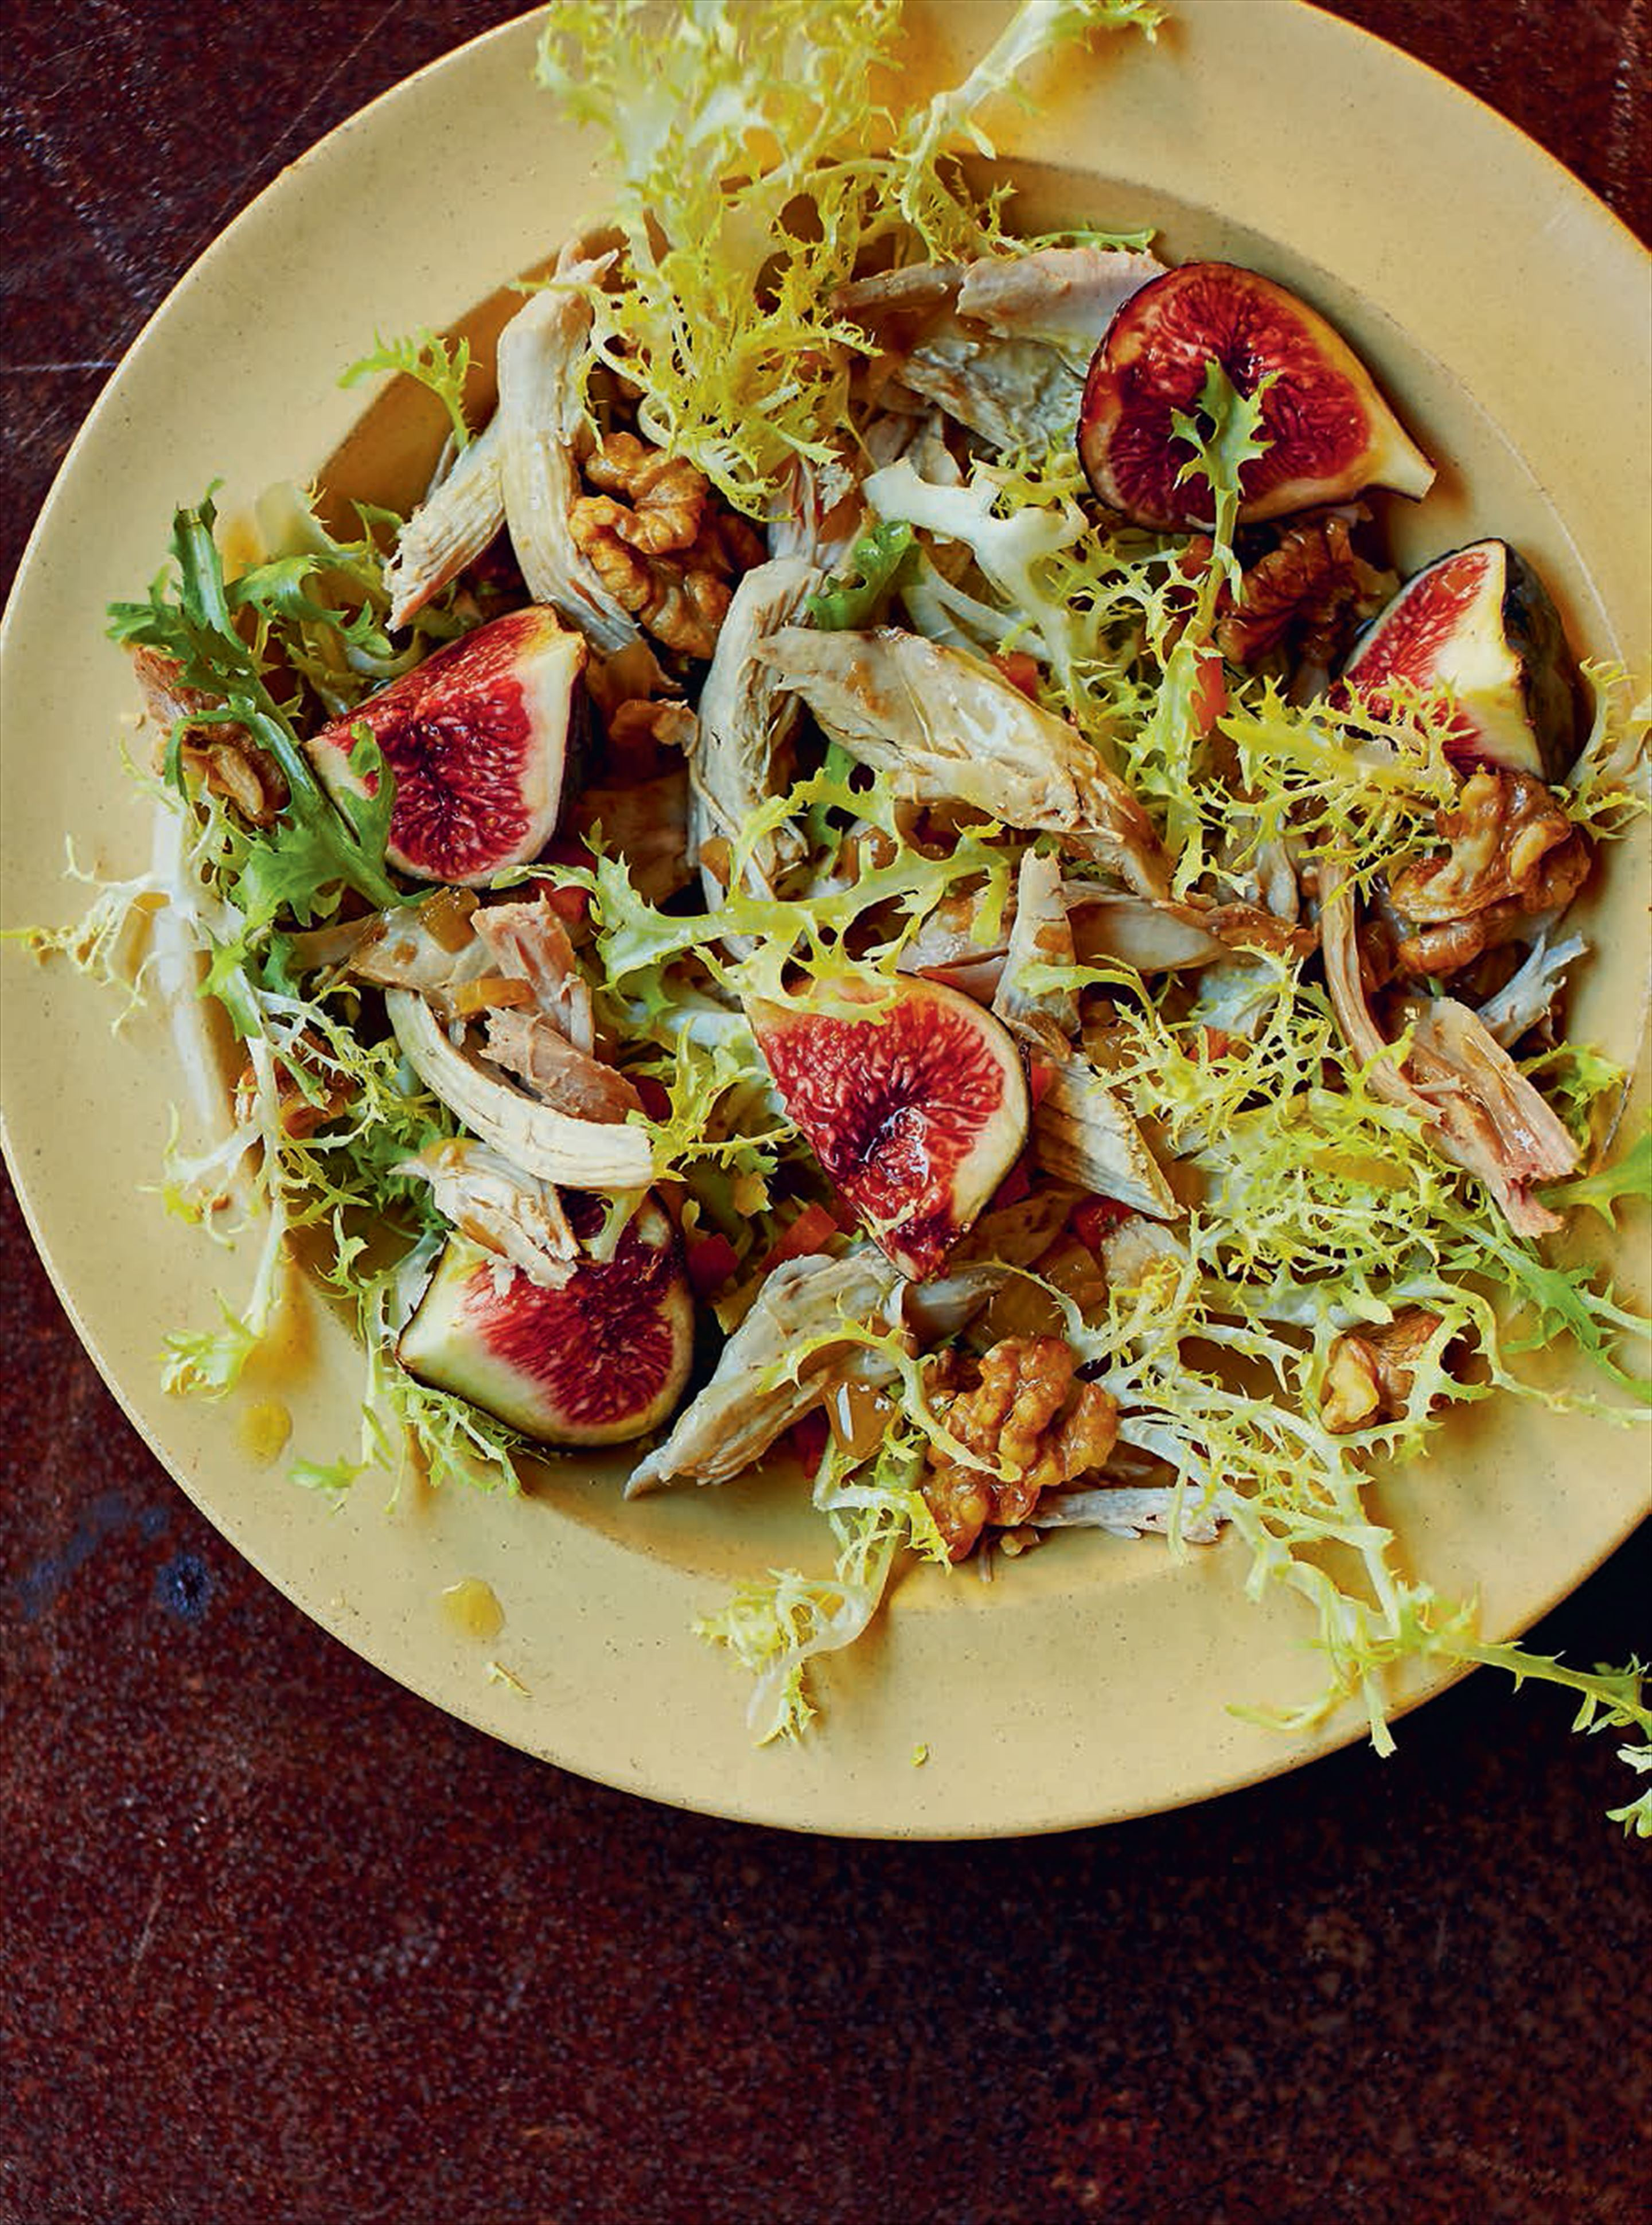 Salad of partridge escabeche, walnuts & figs